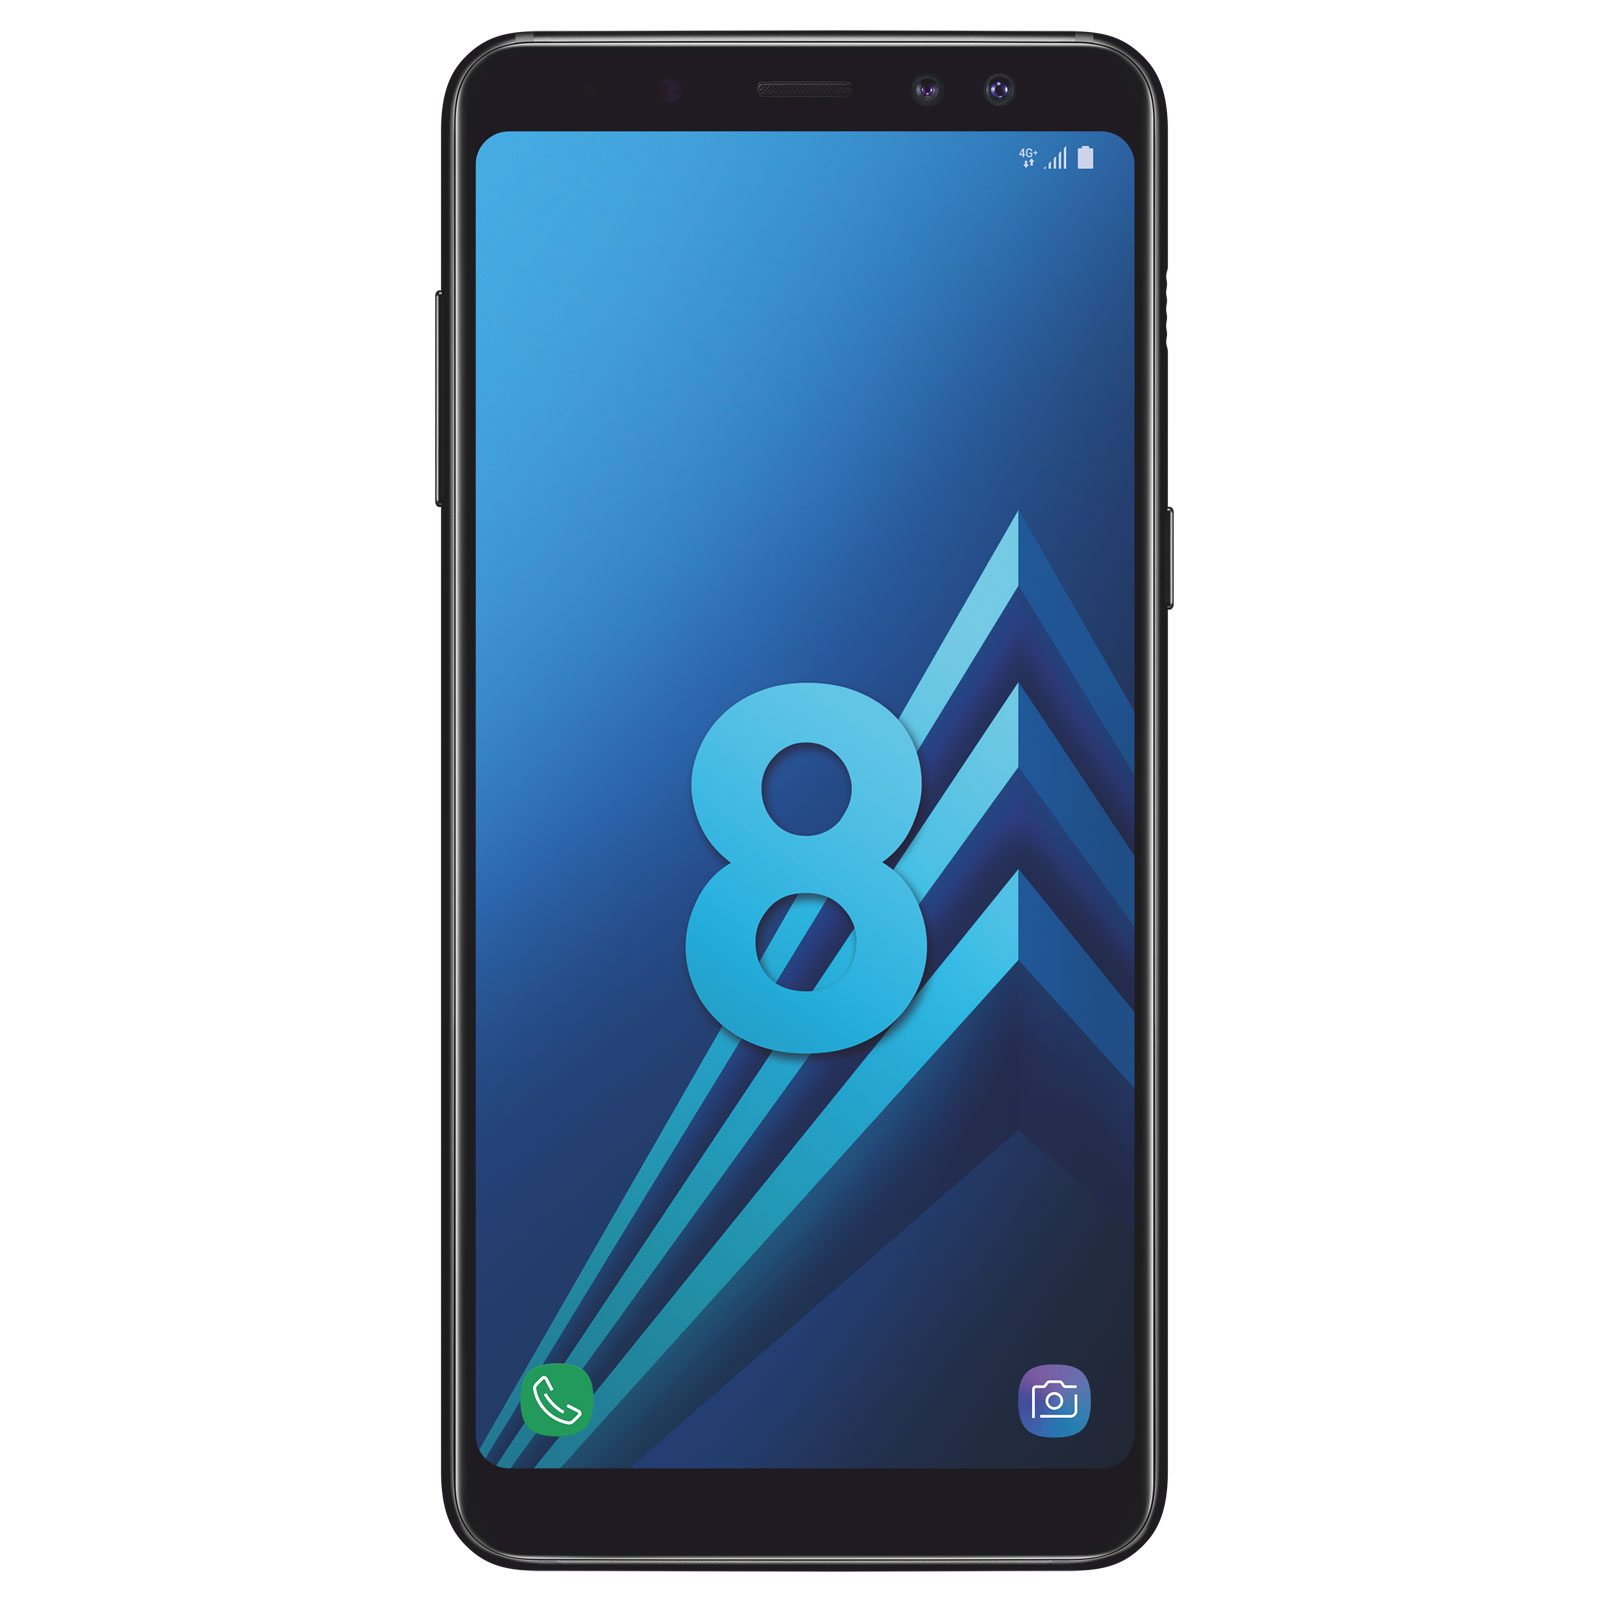 "Mobile & smartphone Samsung Galaxy A8 Noir Smartphone 4G-LTE Advanced IP68 Dual SIM - Exynos 7885 8-Core 2.2 Ghz - RAM 4 Go - Ecran tactile 5.6"" 1080 x 2220 - 32 Go - NFC/Bluetooth 5.0 - 3000 mAh - Android 7.1"